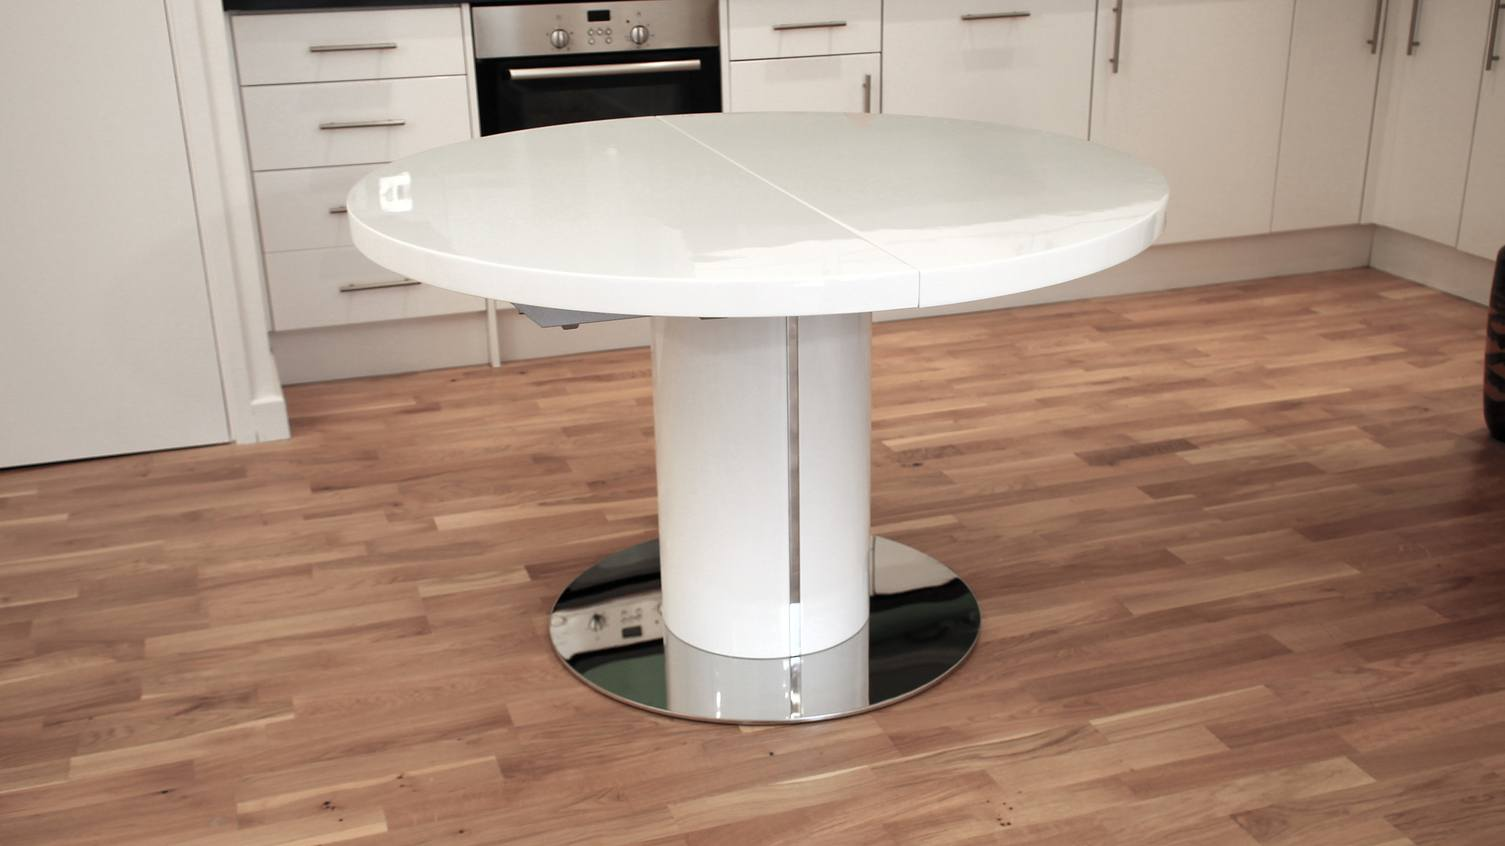 cream wood dining table 2017 and chairsround extendable dining table pedestal starrkingschool. beautiful ideas. Home Design Ideas